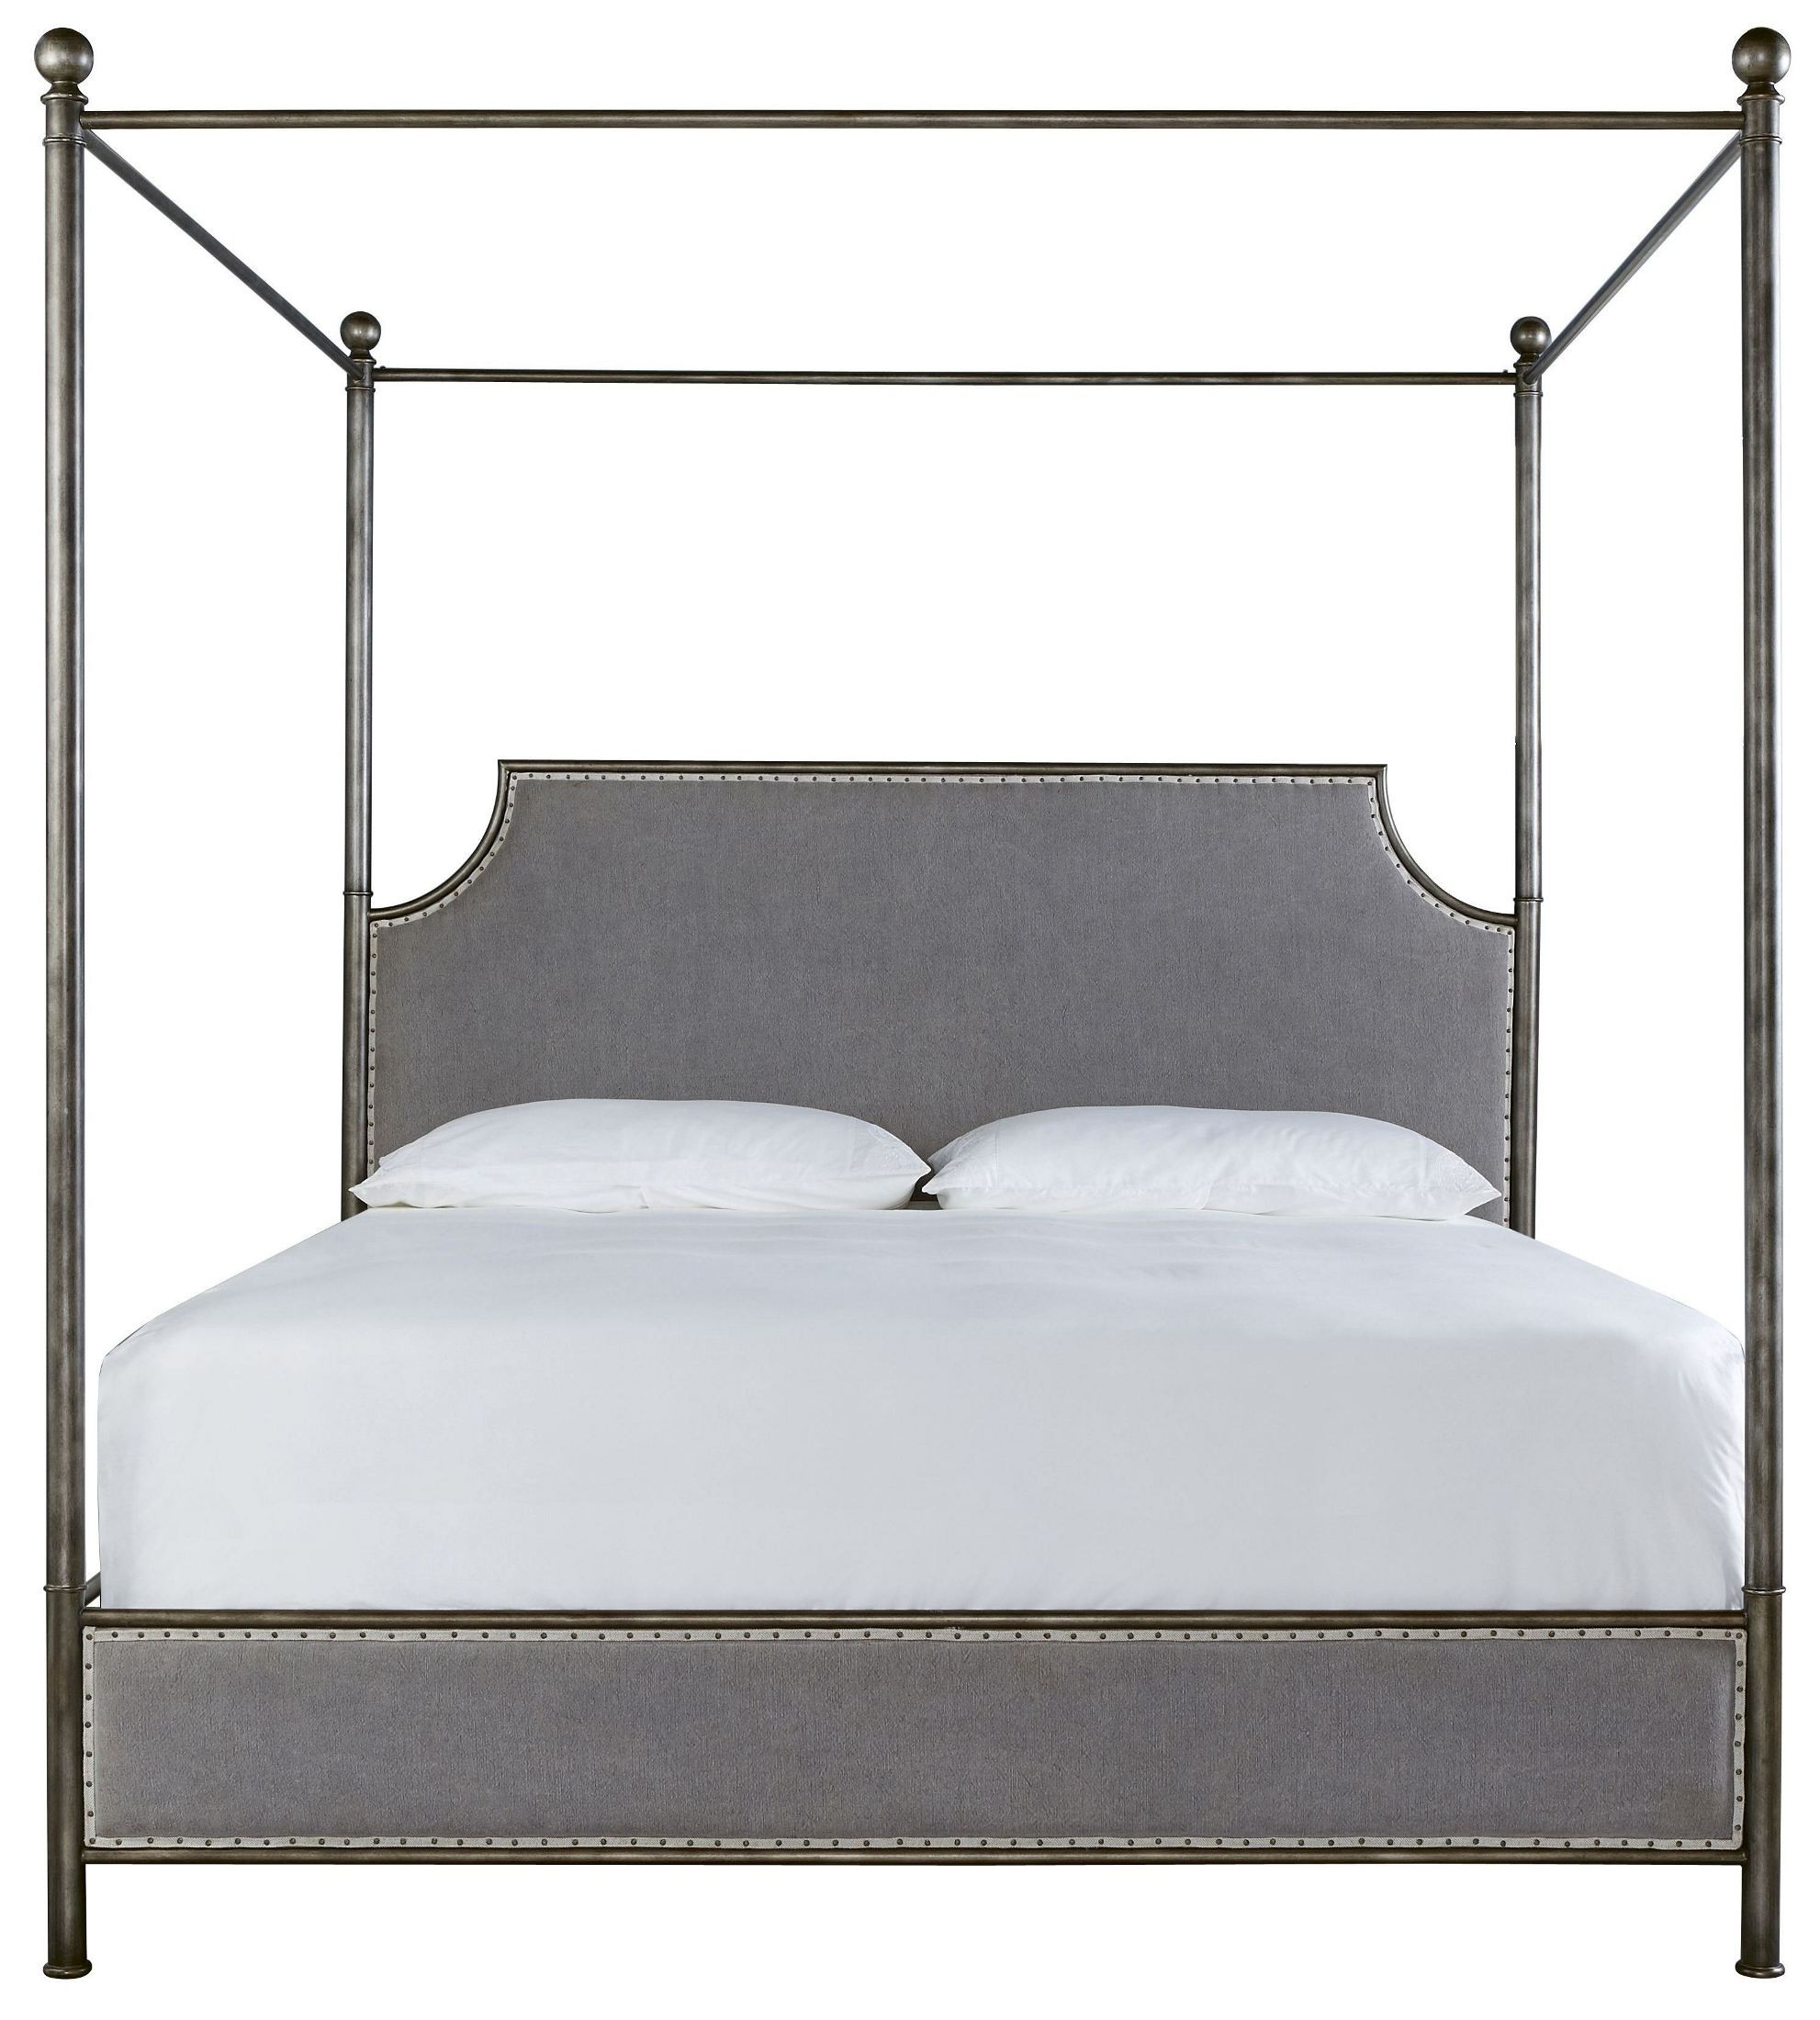 Sojourn Respite Queen Canopy Bed From Universal Coleman